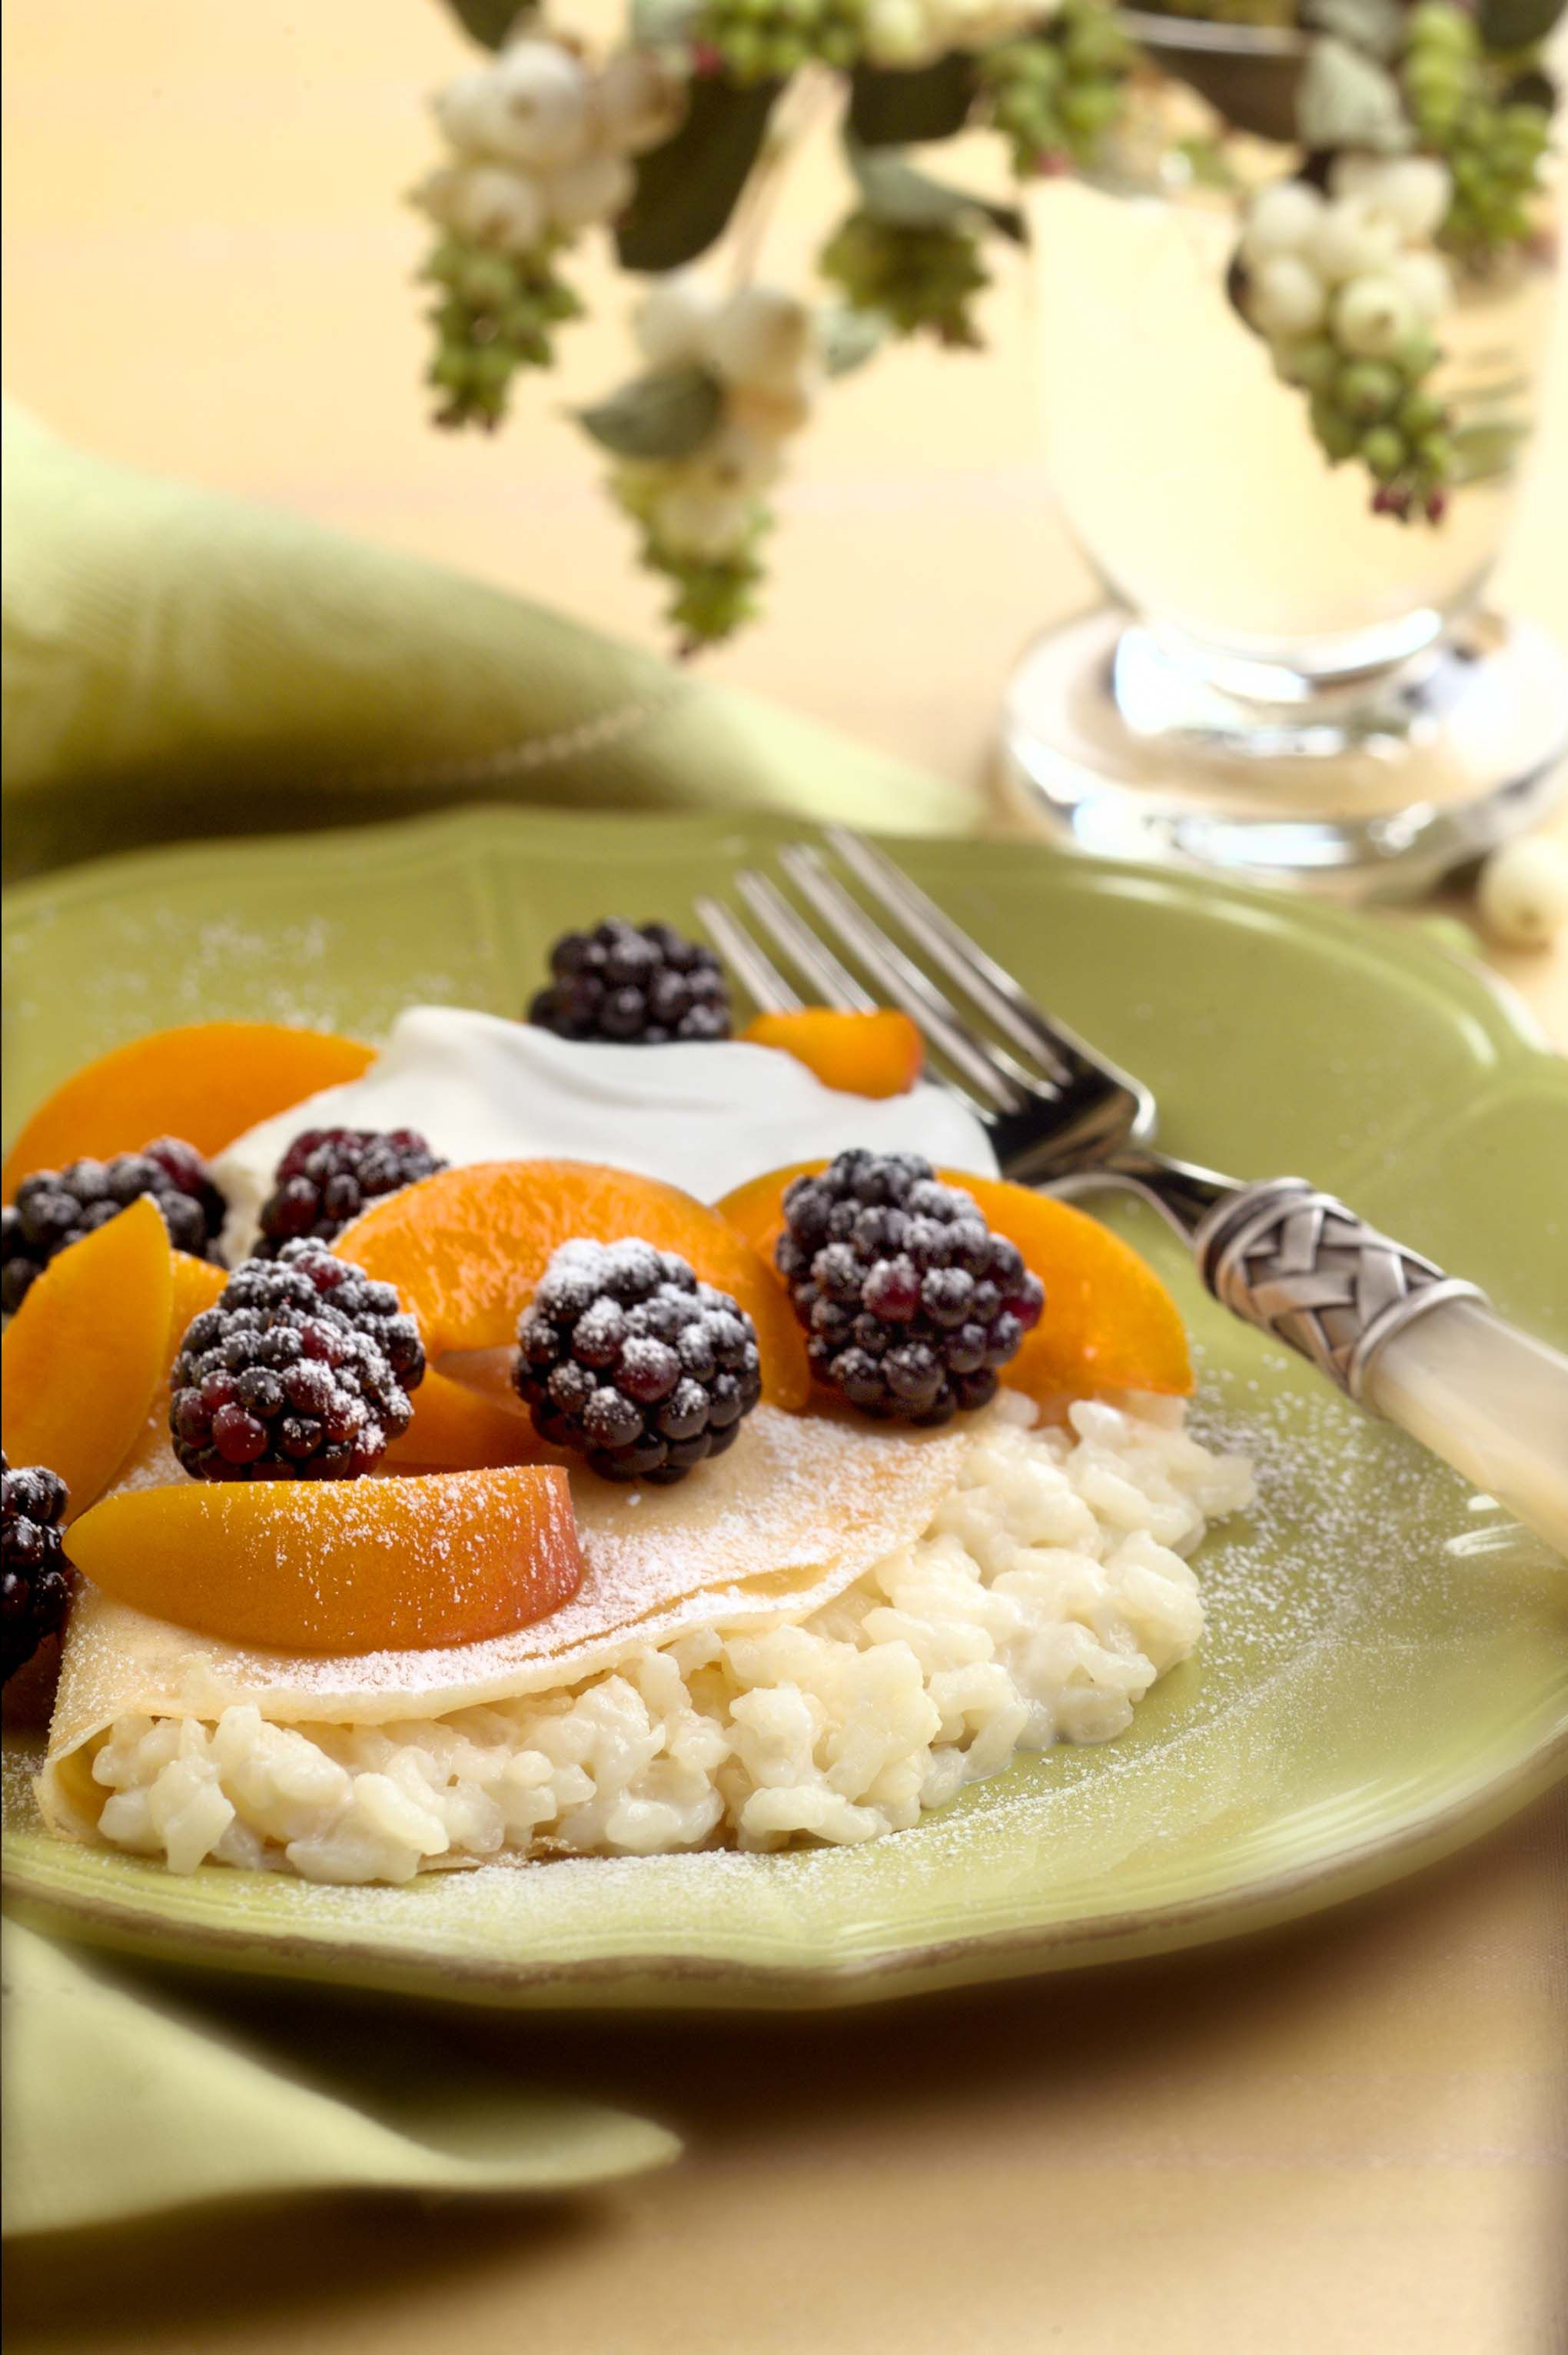 Looking for a good way to cook up our RiceSelect Arborio rice? Look no further and try this delectable Crepes Stuffed with Grand Marnier Rice Pudding.